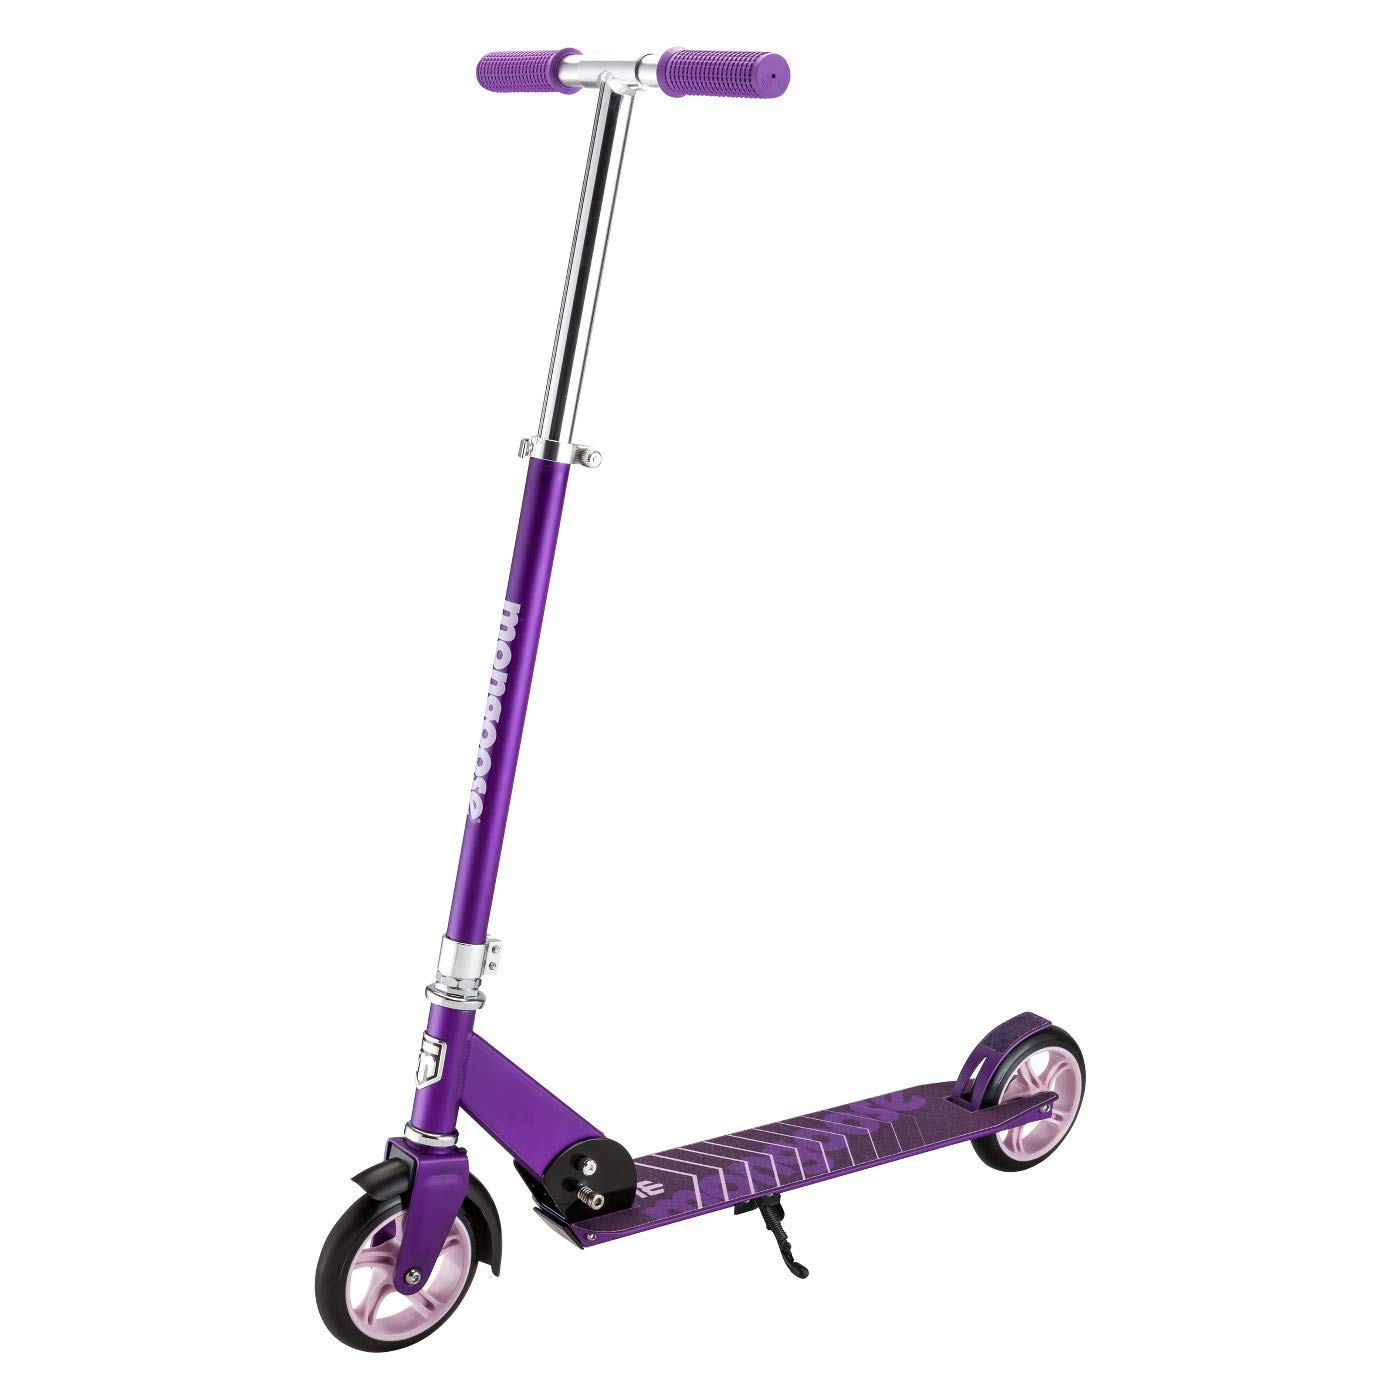 Mongoose Force 3.0 Scooter - Purple by Mongoose